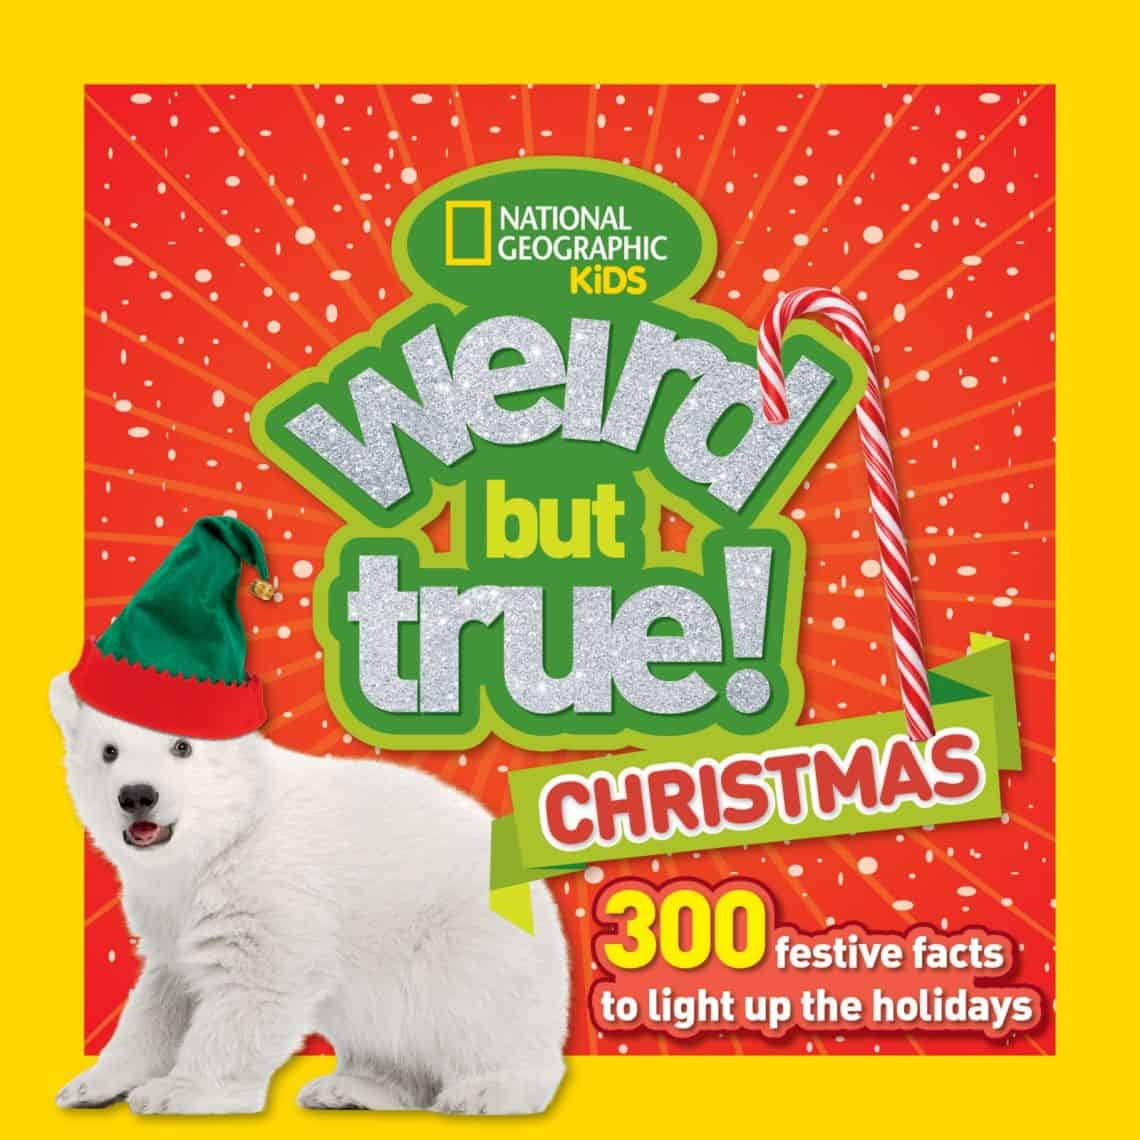 WBT Christmas Cvr FINAL copy 1140x1140 - Holiday Gift Guide 2017: Gifts For Kids and Pets